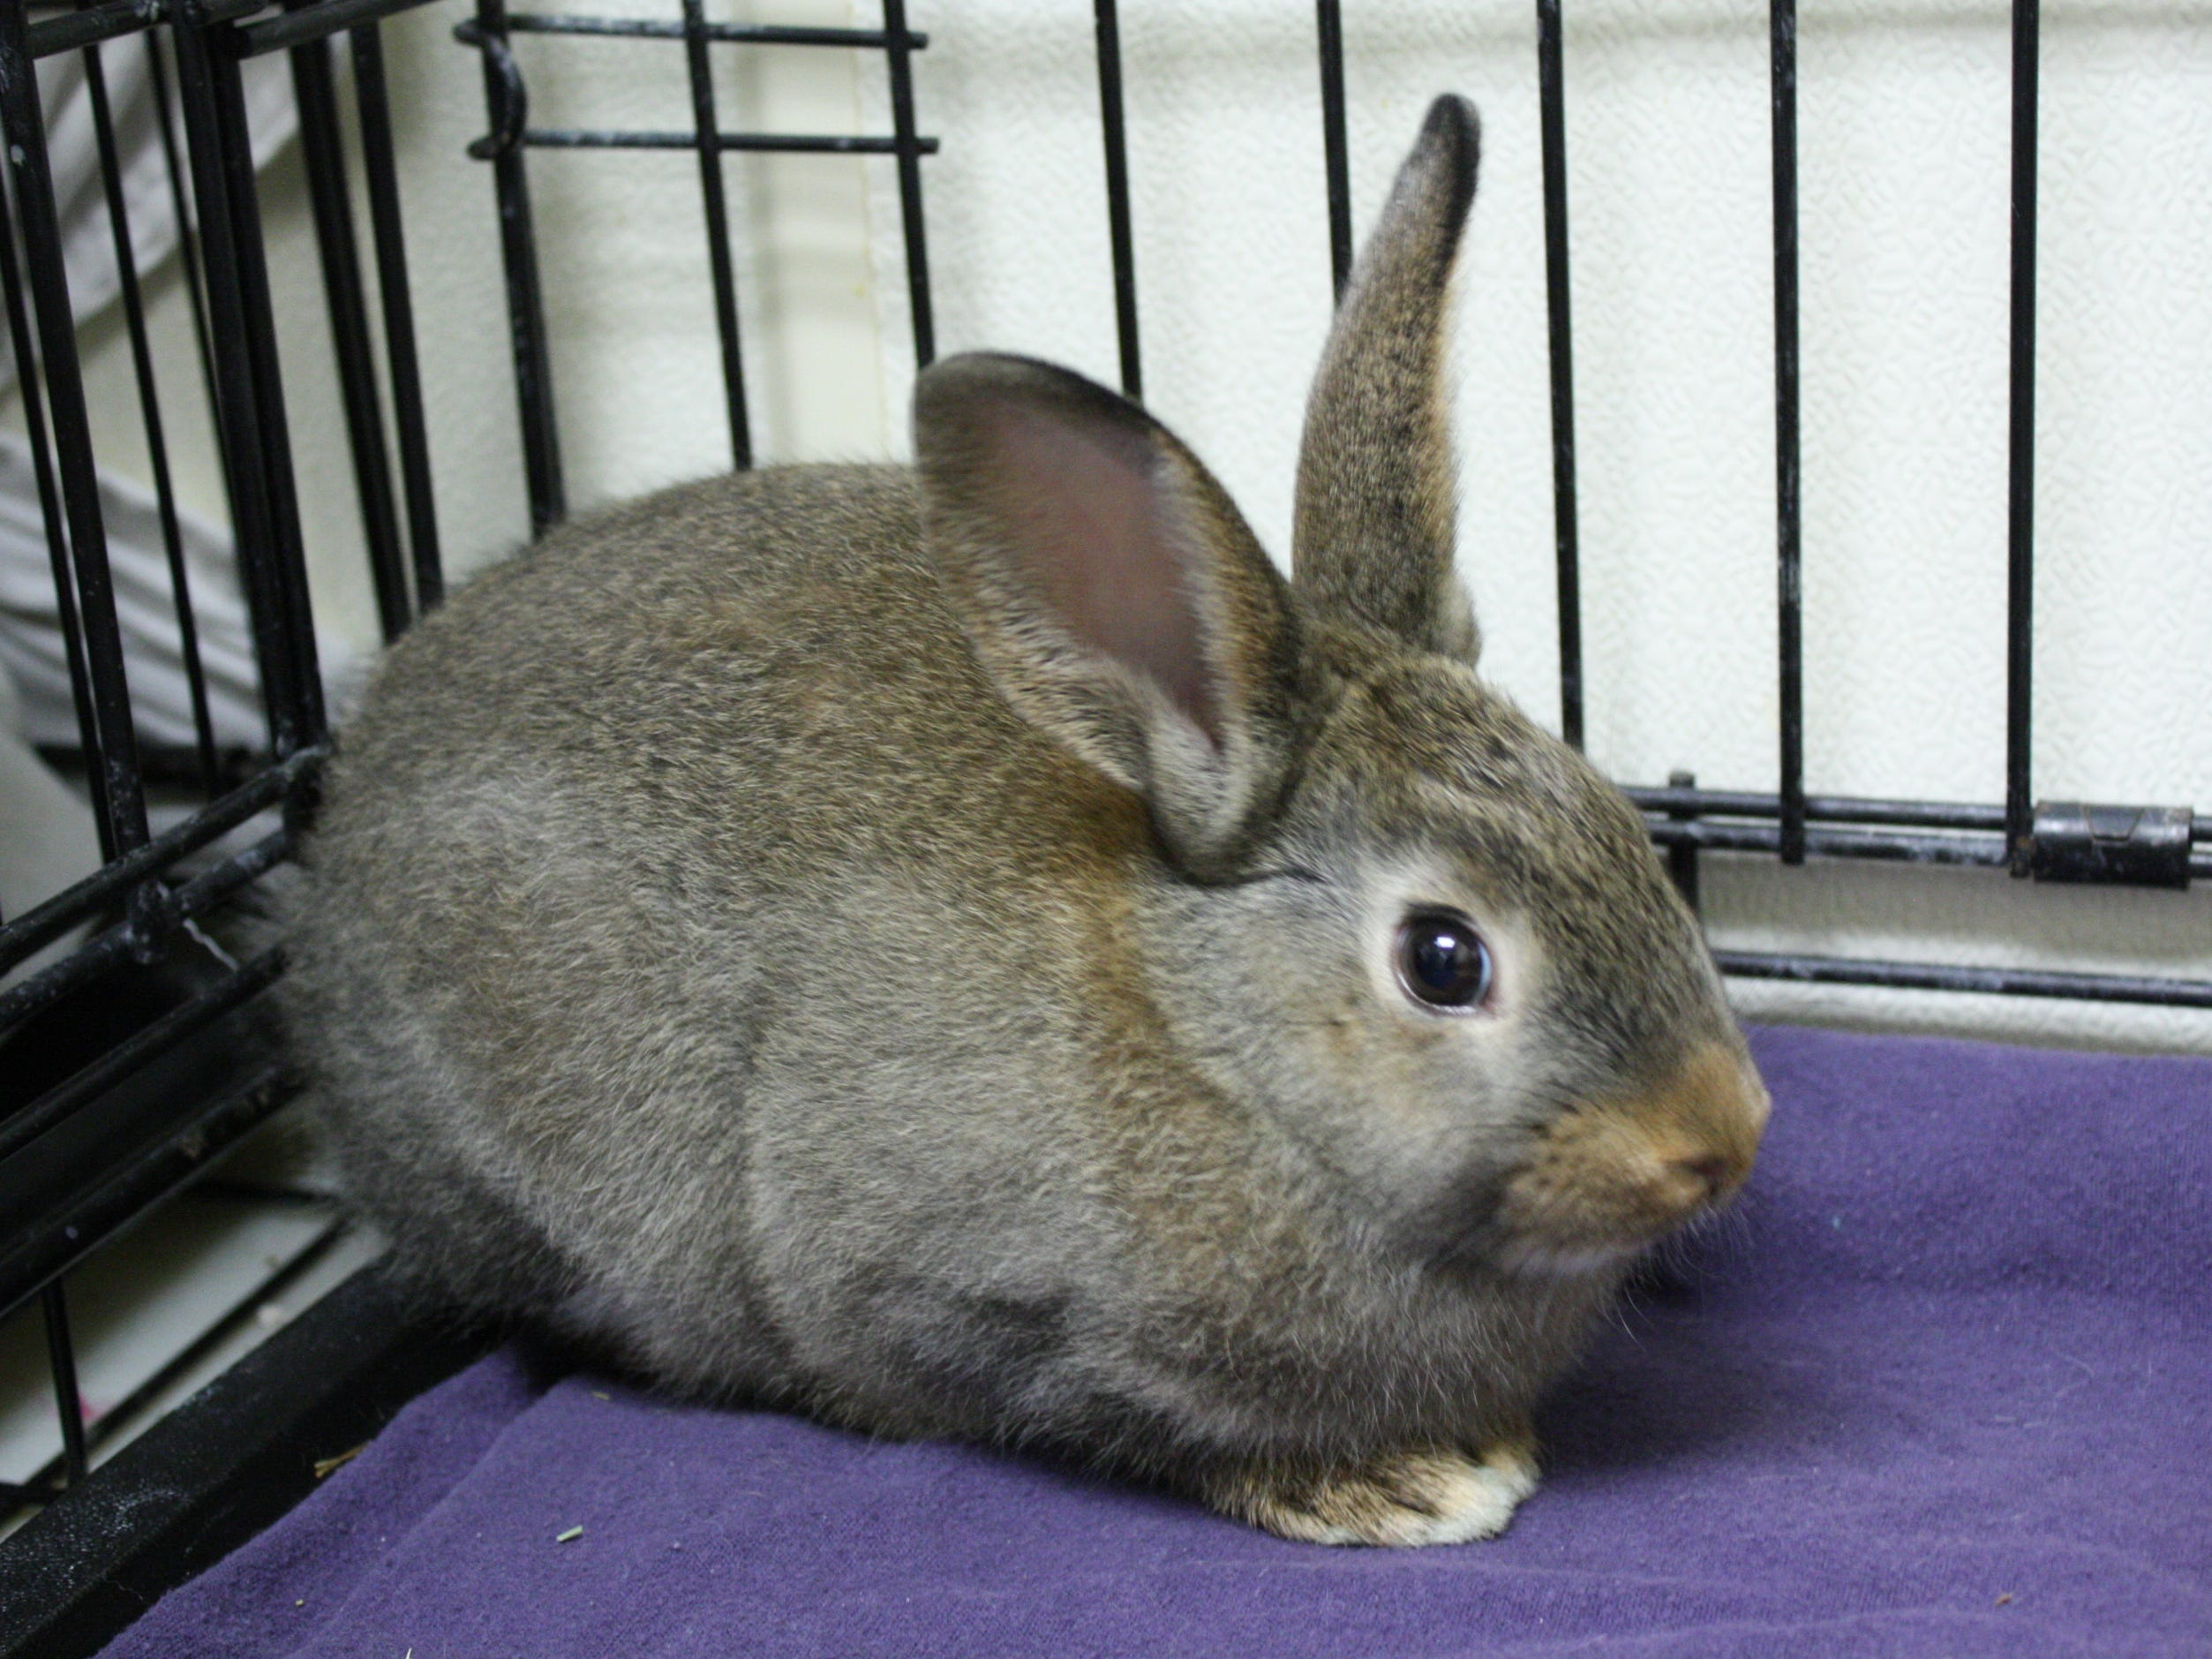 A 1-month-old American rabbit, Merino wants to go home with his sister, Cashmere.